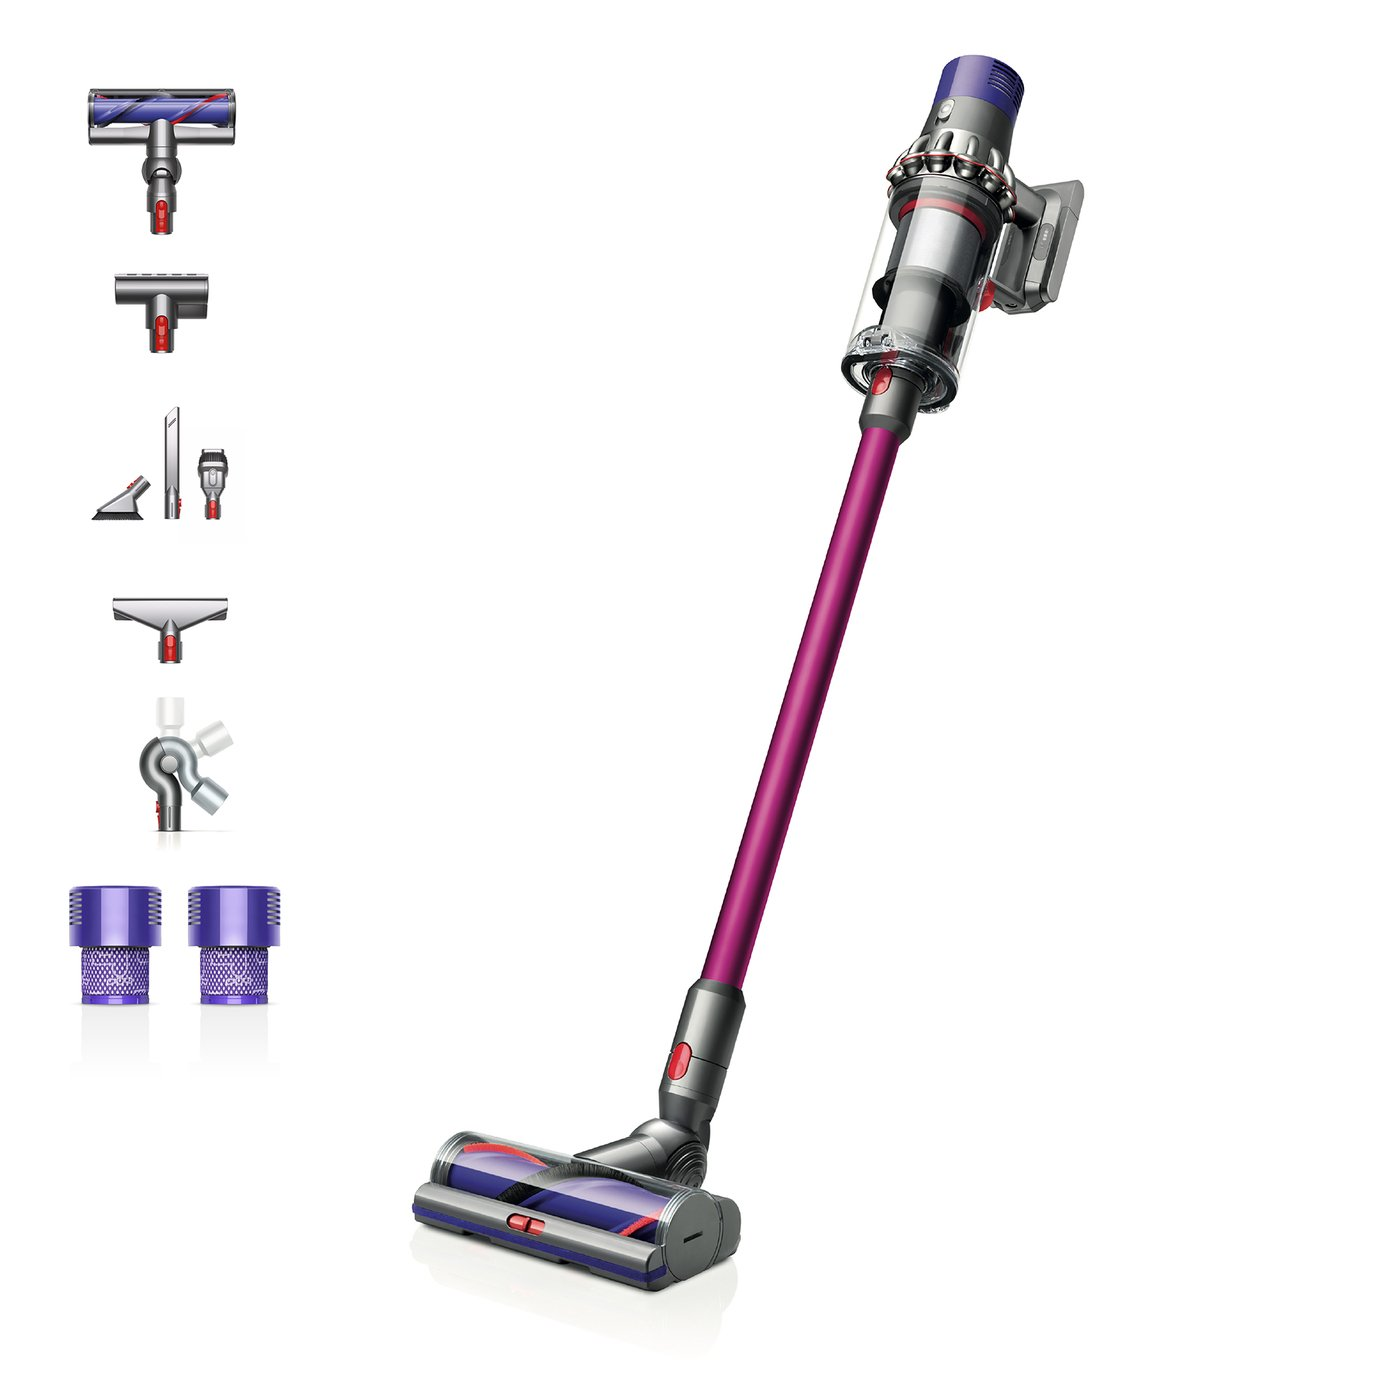 Dyson Cyclone V10 Animal Extra Cordless Vacuum Cleaner